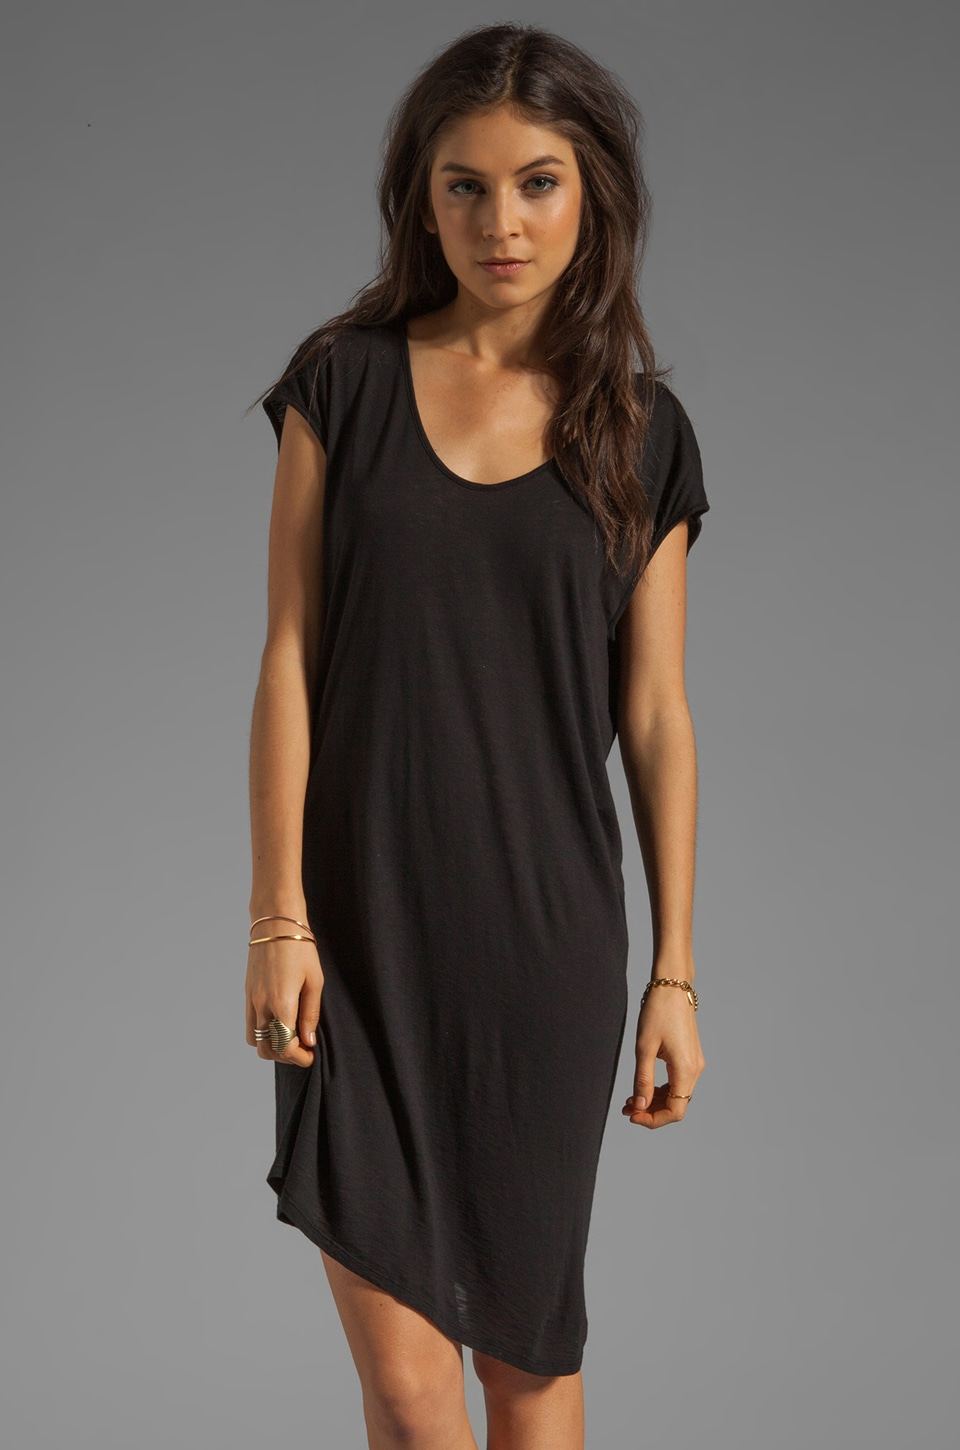 Graham & Spencer Modal Slub Shirt Dress in Black